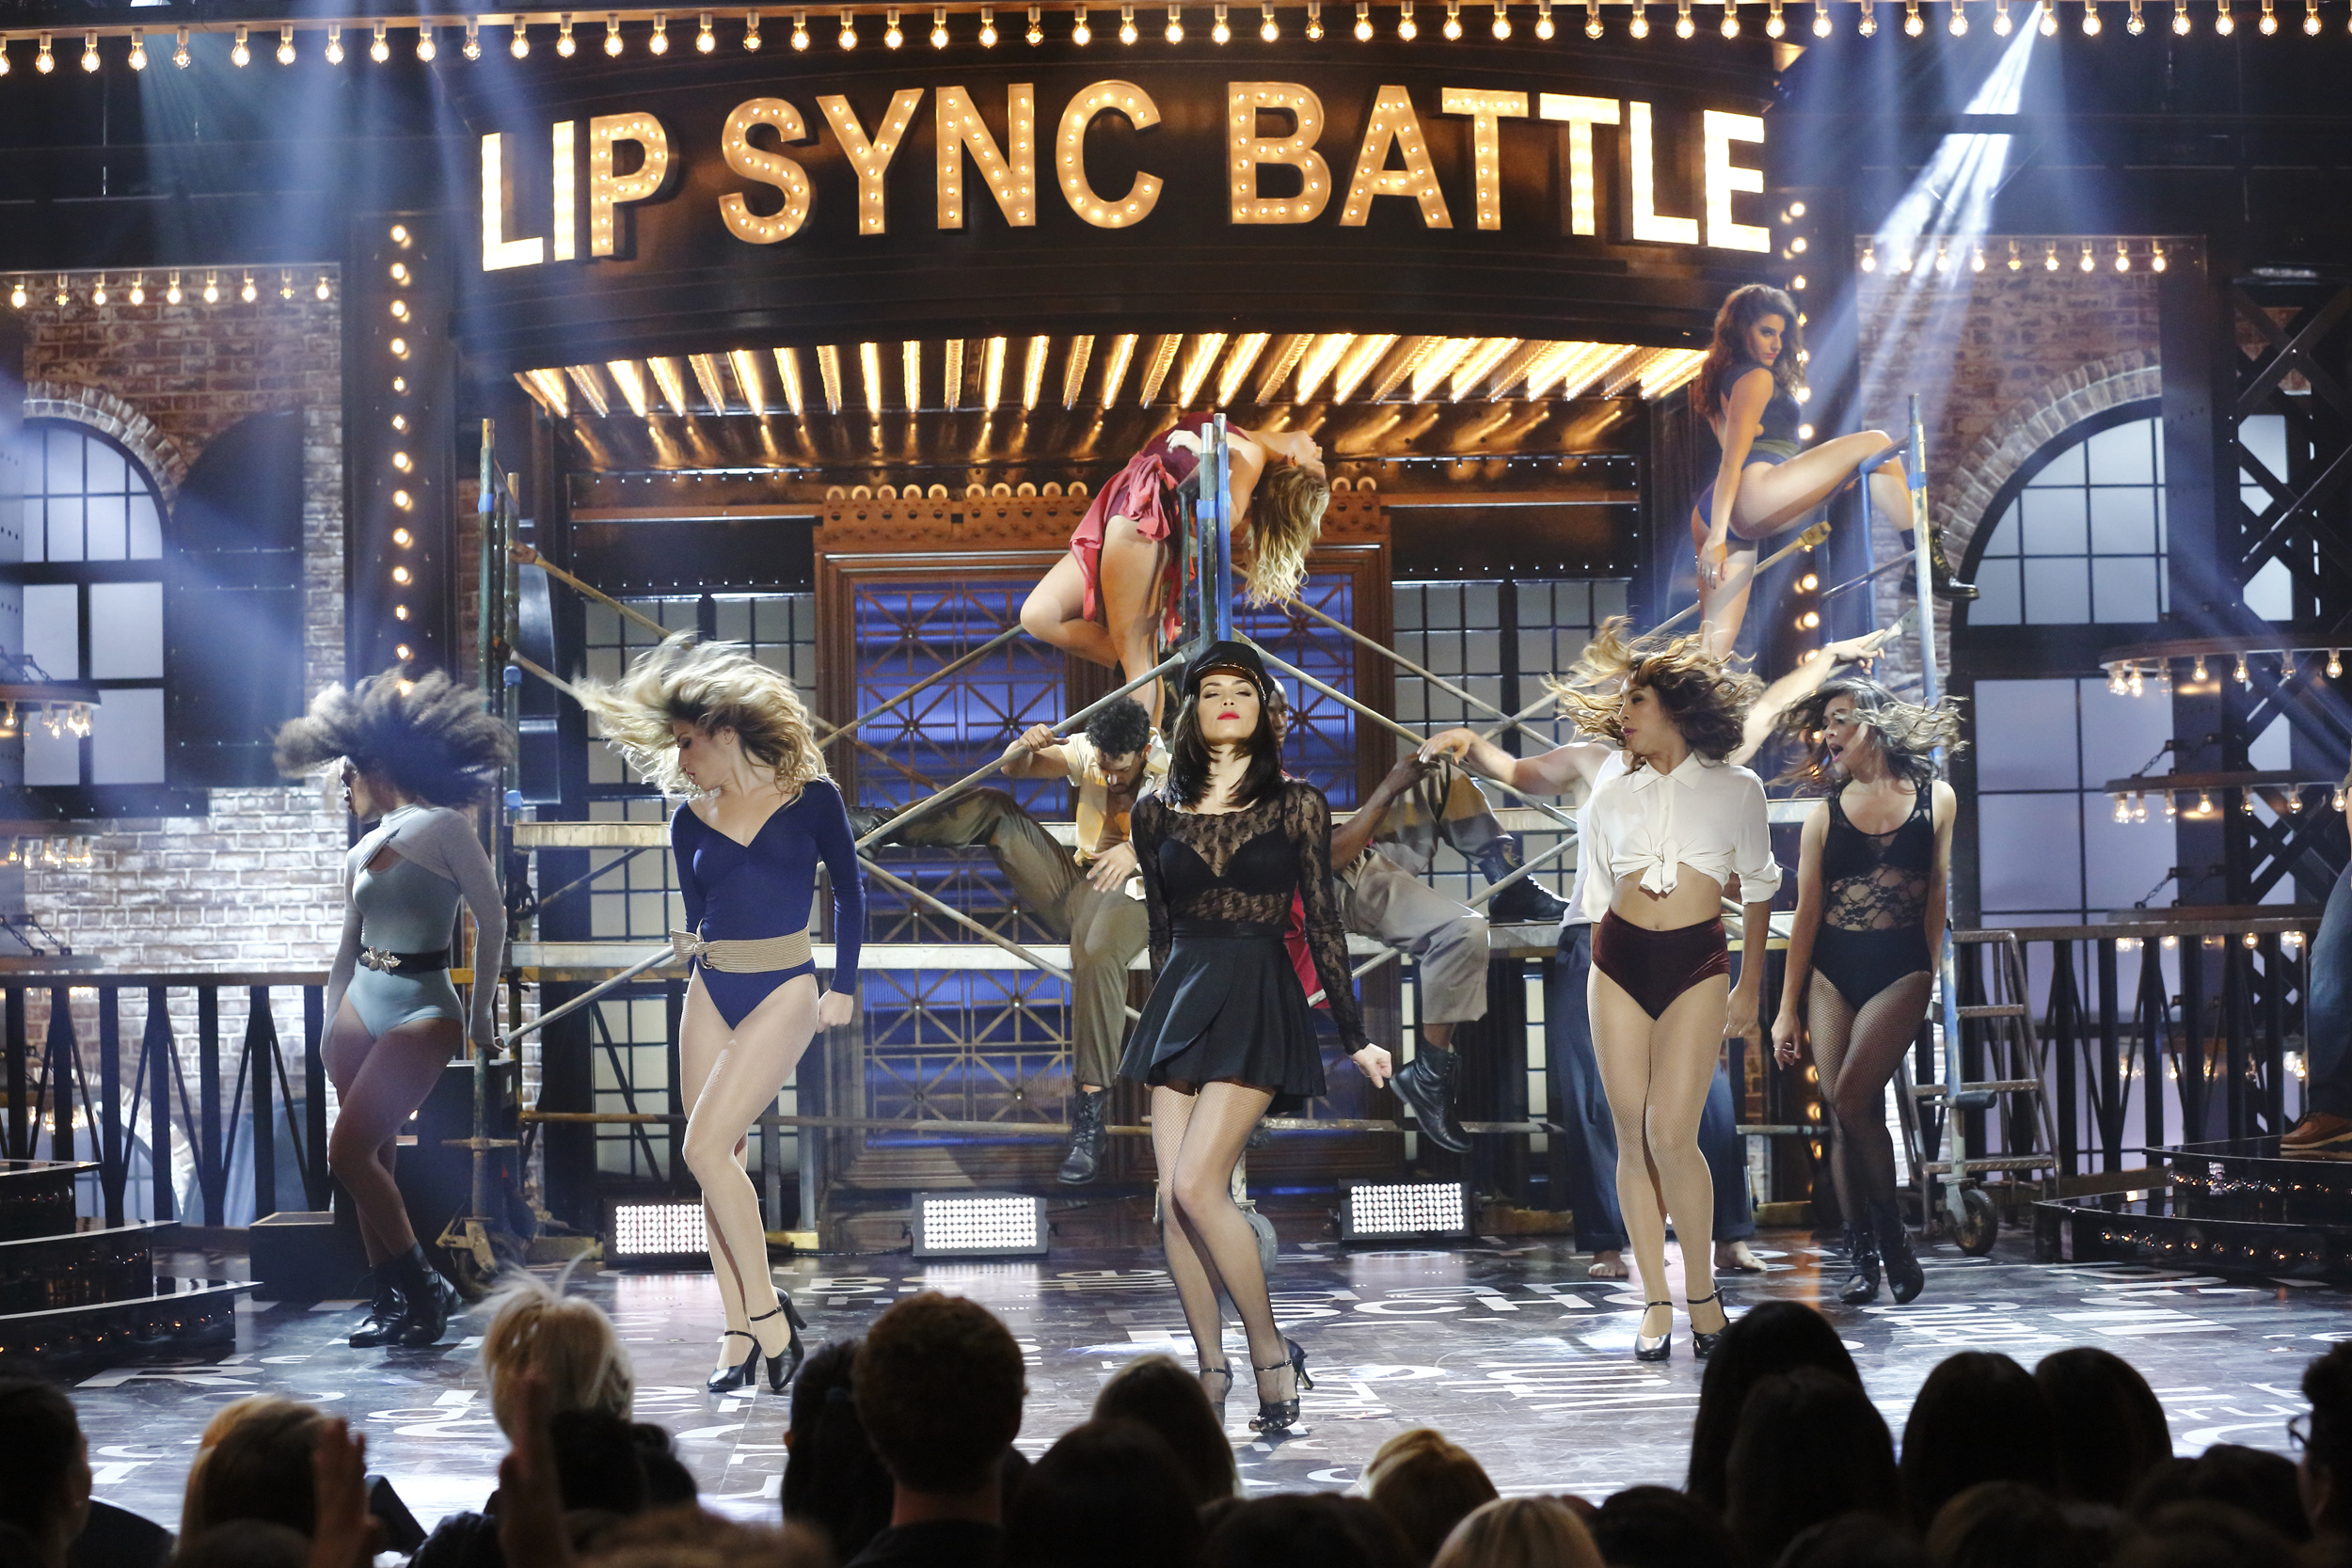 Jenna Dewan-Tatum performs, In the episode submitted for Emmy consideration.